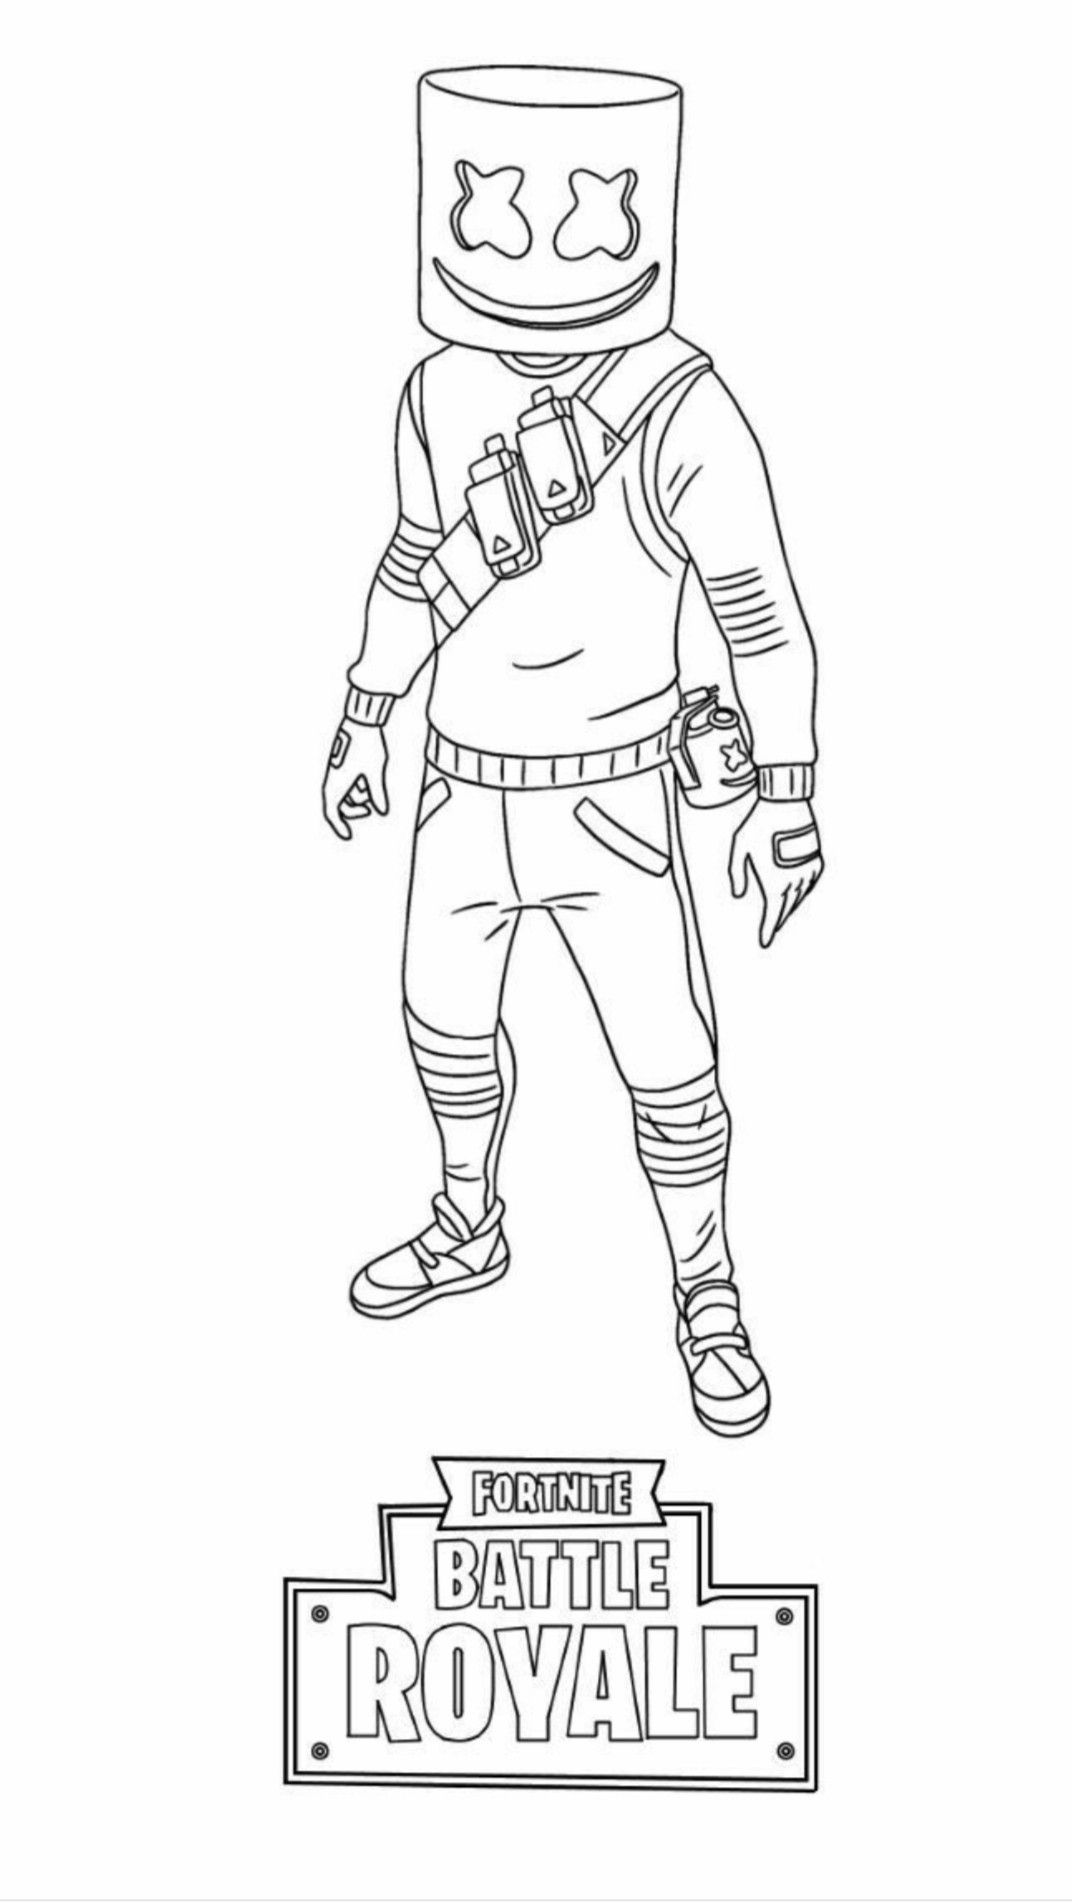 Pin By Franco Fansdevideojuegosyyoutu On Matatica In 2020 Cool Coloring Pages Cartoon Coloring Pages Coloring Pages For Boys